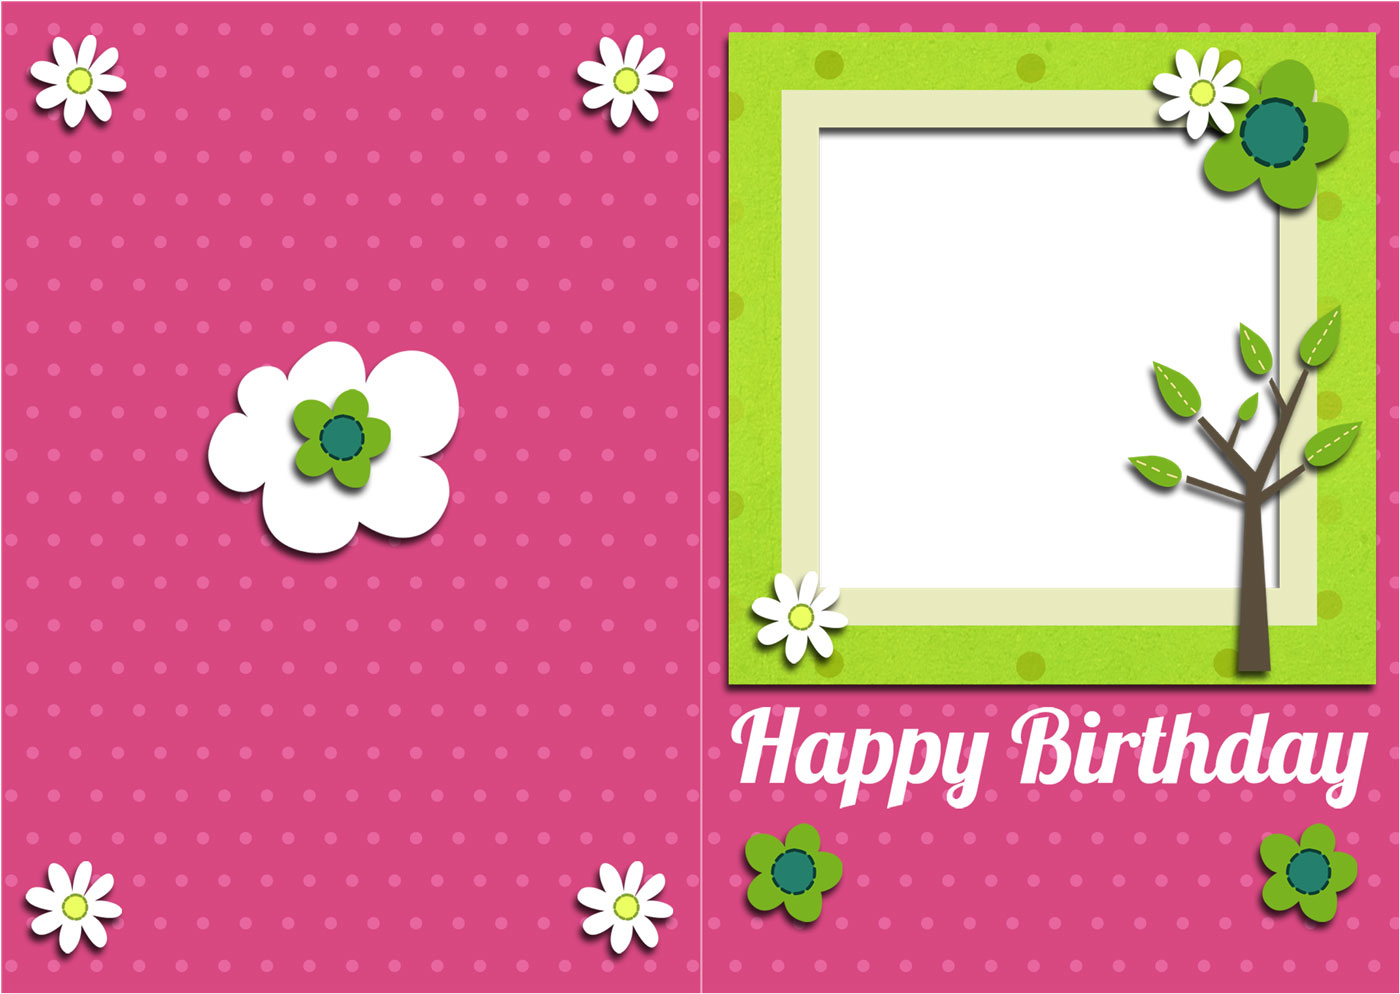 Egreeting ecards greeting cards and happy wishes happy birthday happy birthday print cards kristyandbryce Choice Image